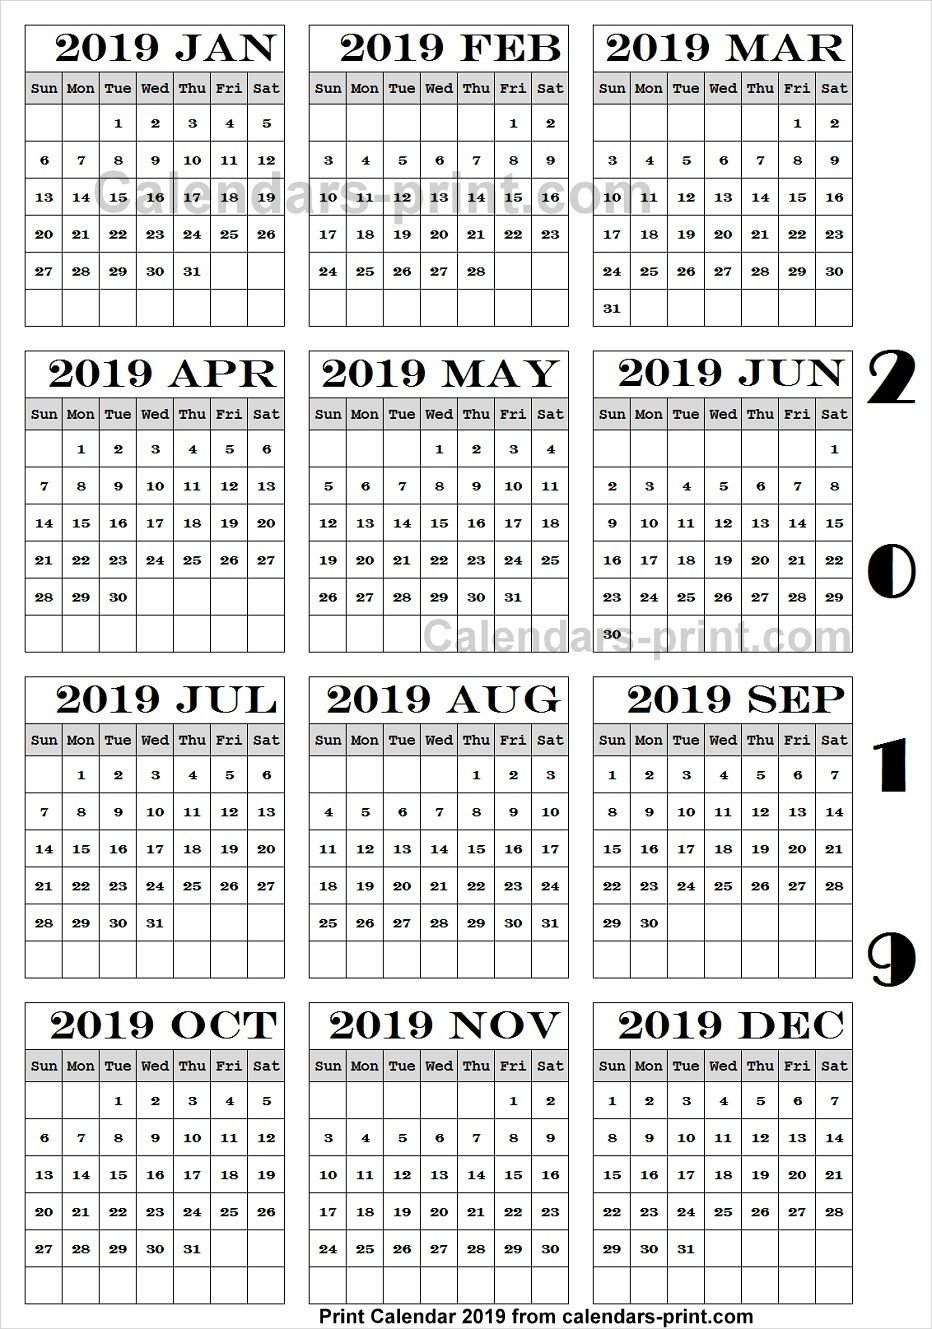 Calendar 2019 Pdf Download | 2019 Yearly Calendar | Print Calendar Calendar 2019 Liga Mx